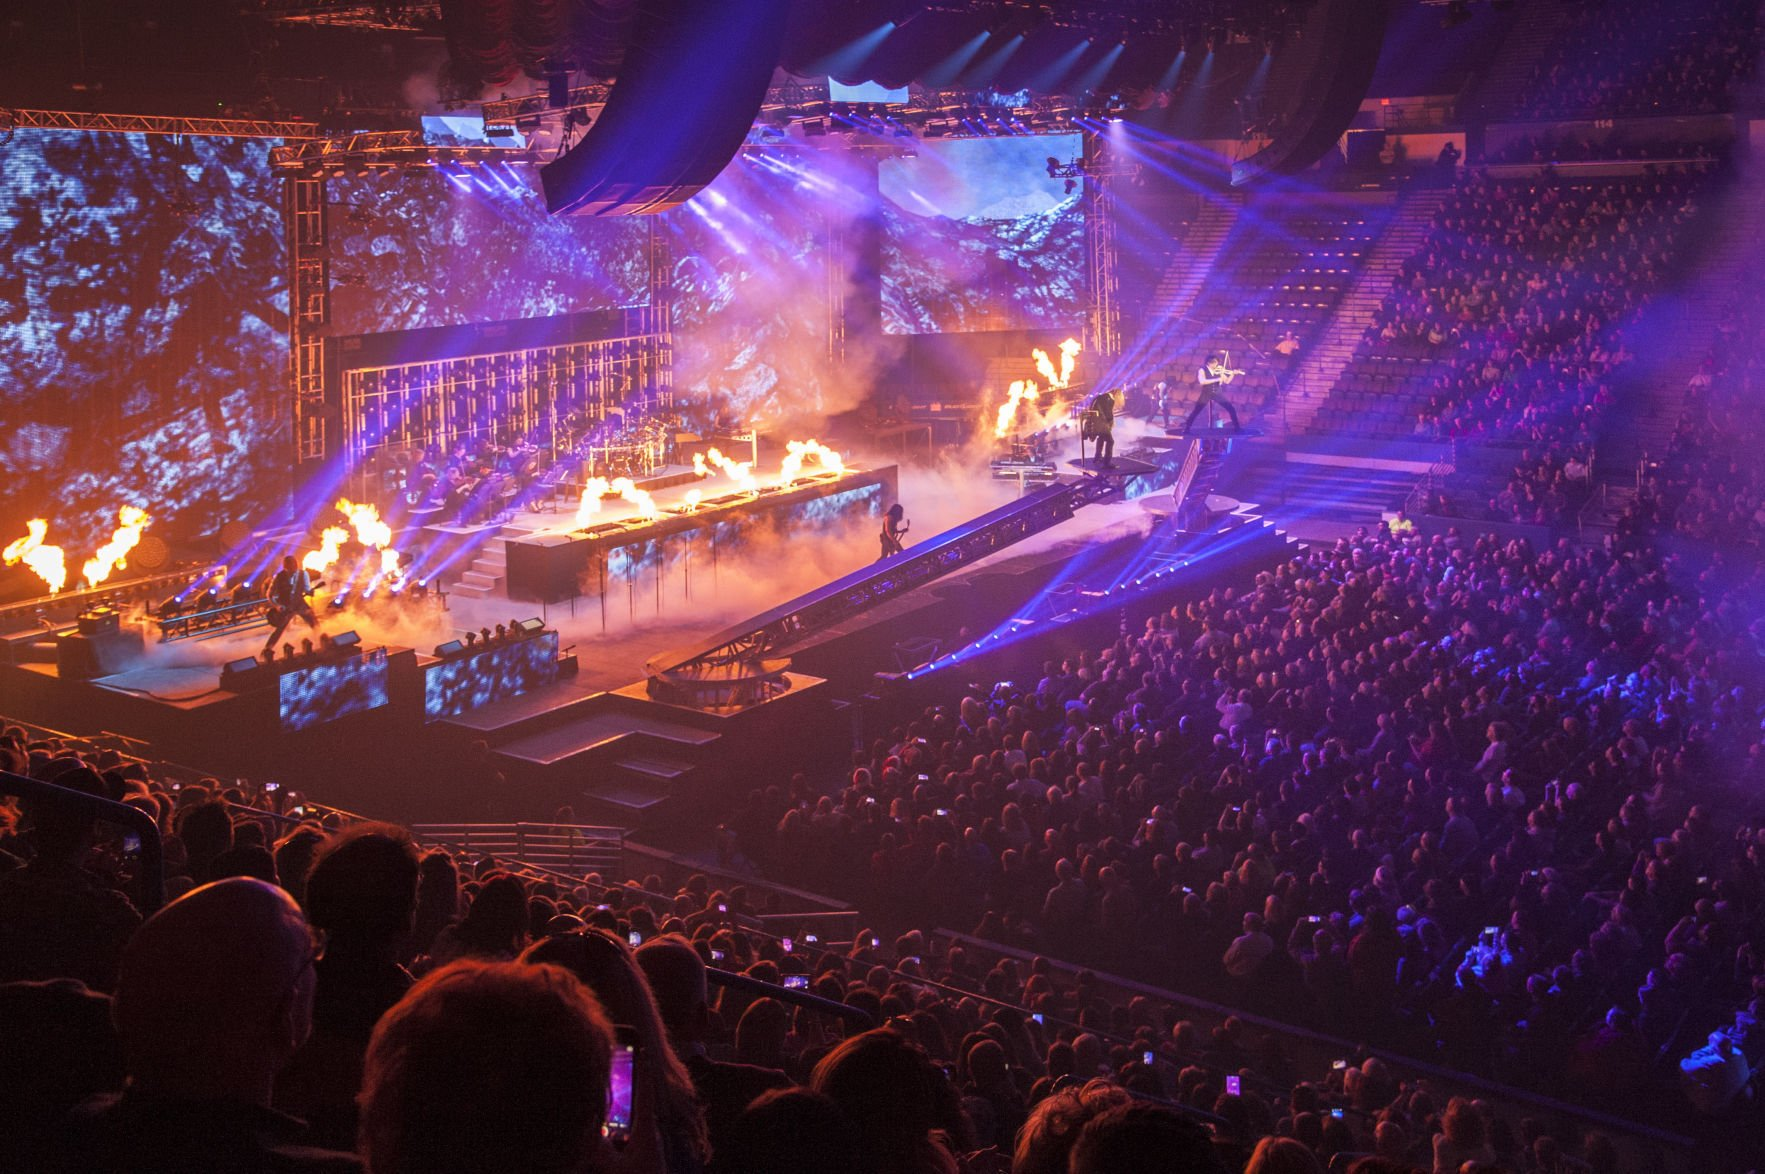 Trans-Siberian Orchestra coming back for 2 shows in Buffalo